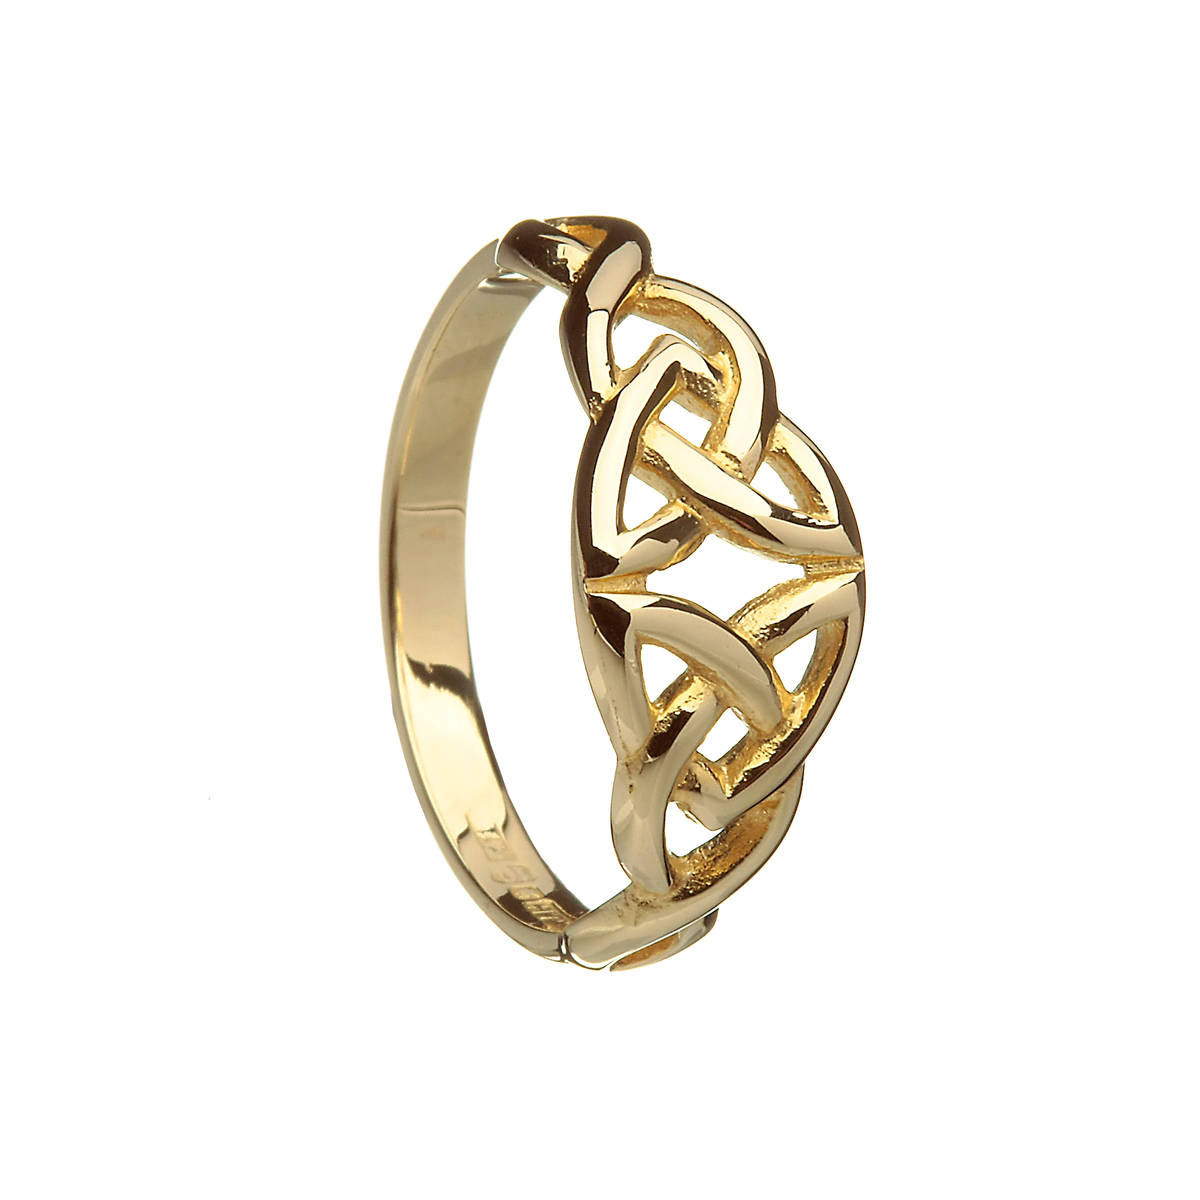 10 carat yellow gold ladies trinity knot ring